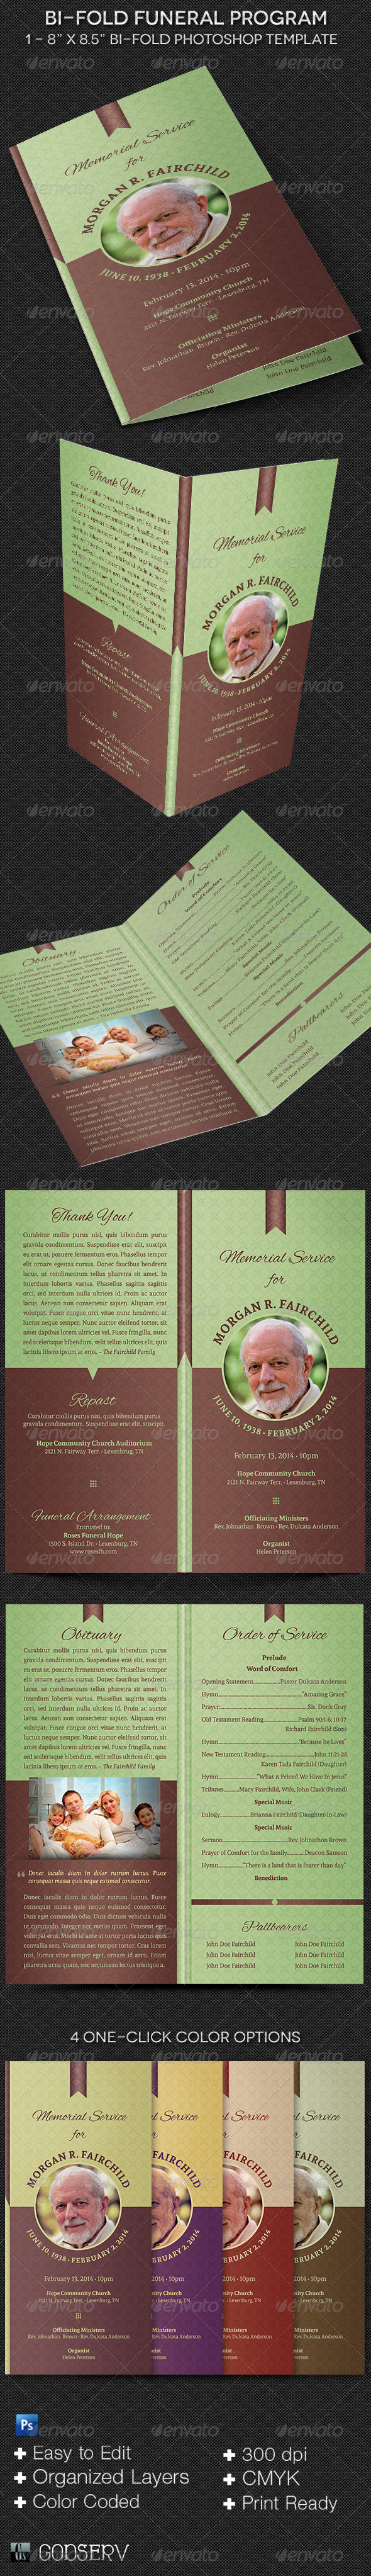 Bi-fold Funeral Program Template - Informational Brochures